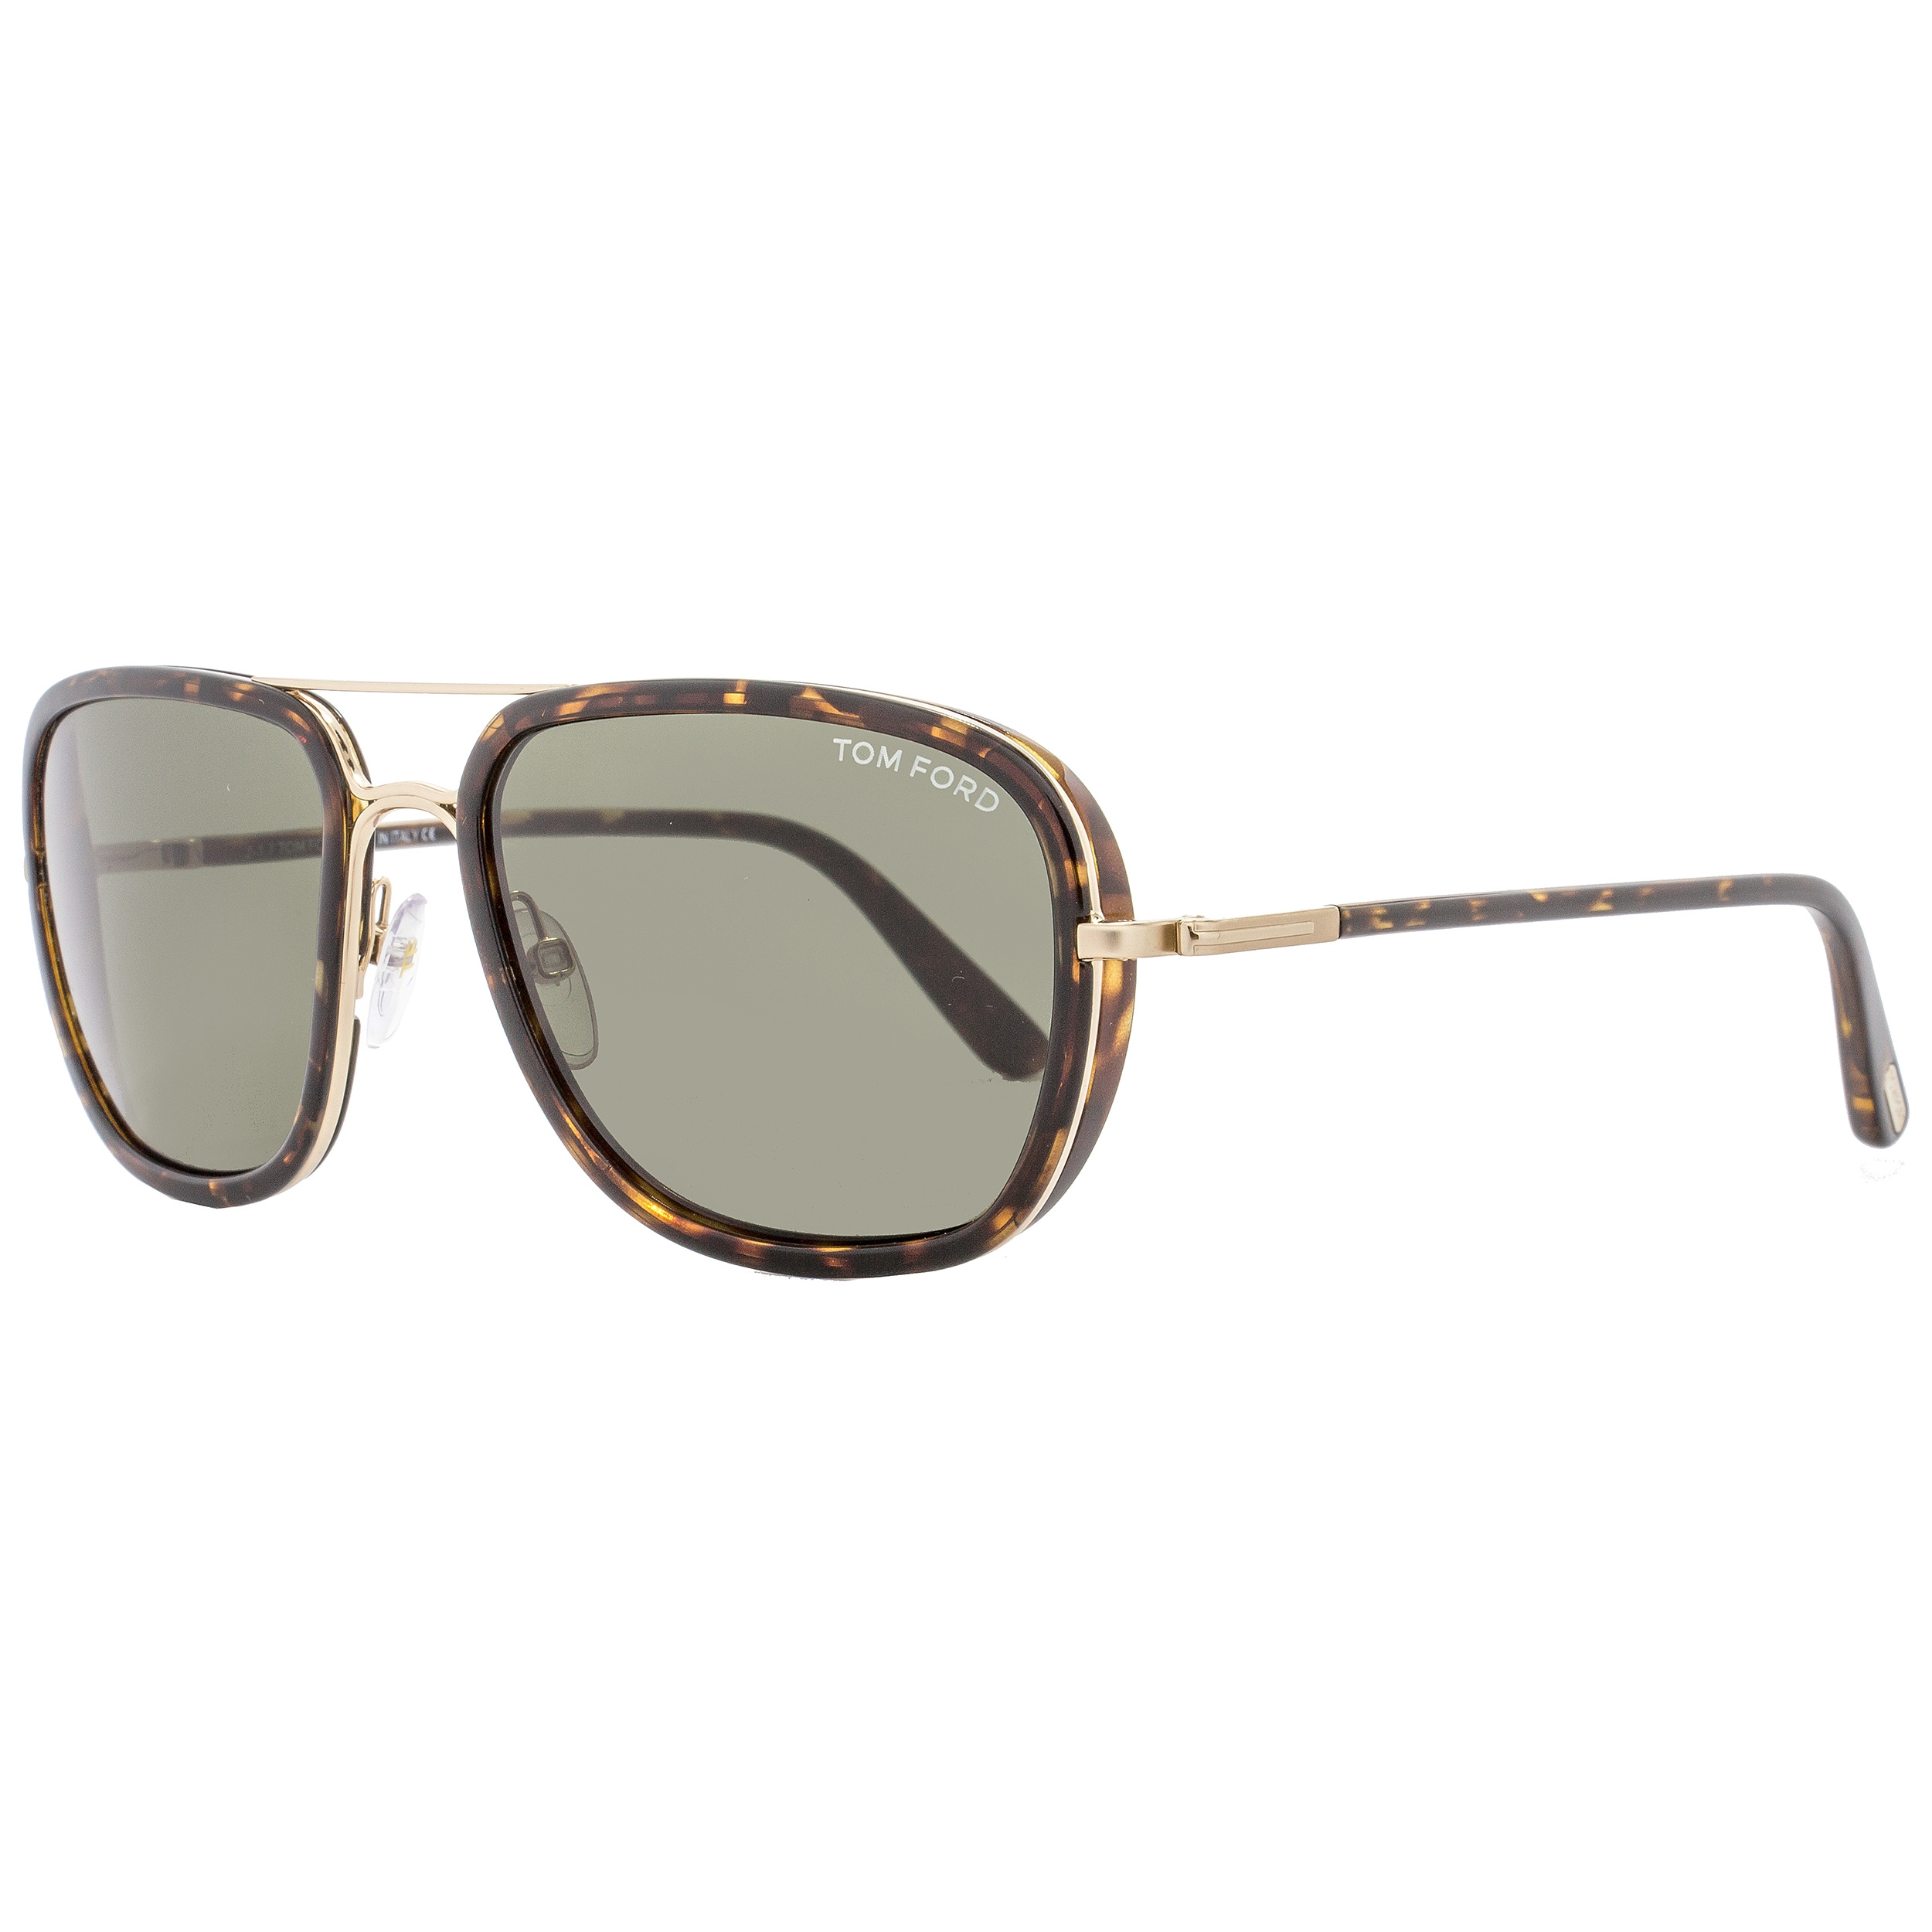 a36401d6b4f7 Shop Tom Ford TF340 Riccardo 28N Women s Havana Gold Green Lens Sunglasses  - Free Shipping Today - Overstock - 18153212